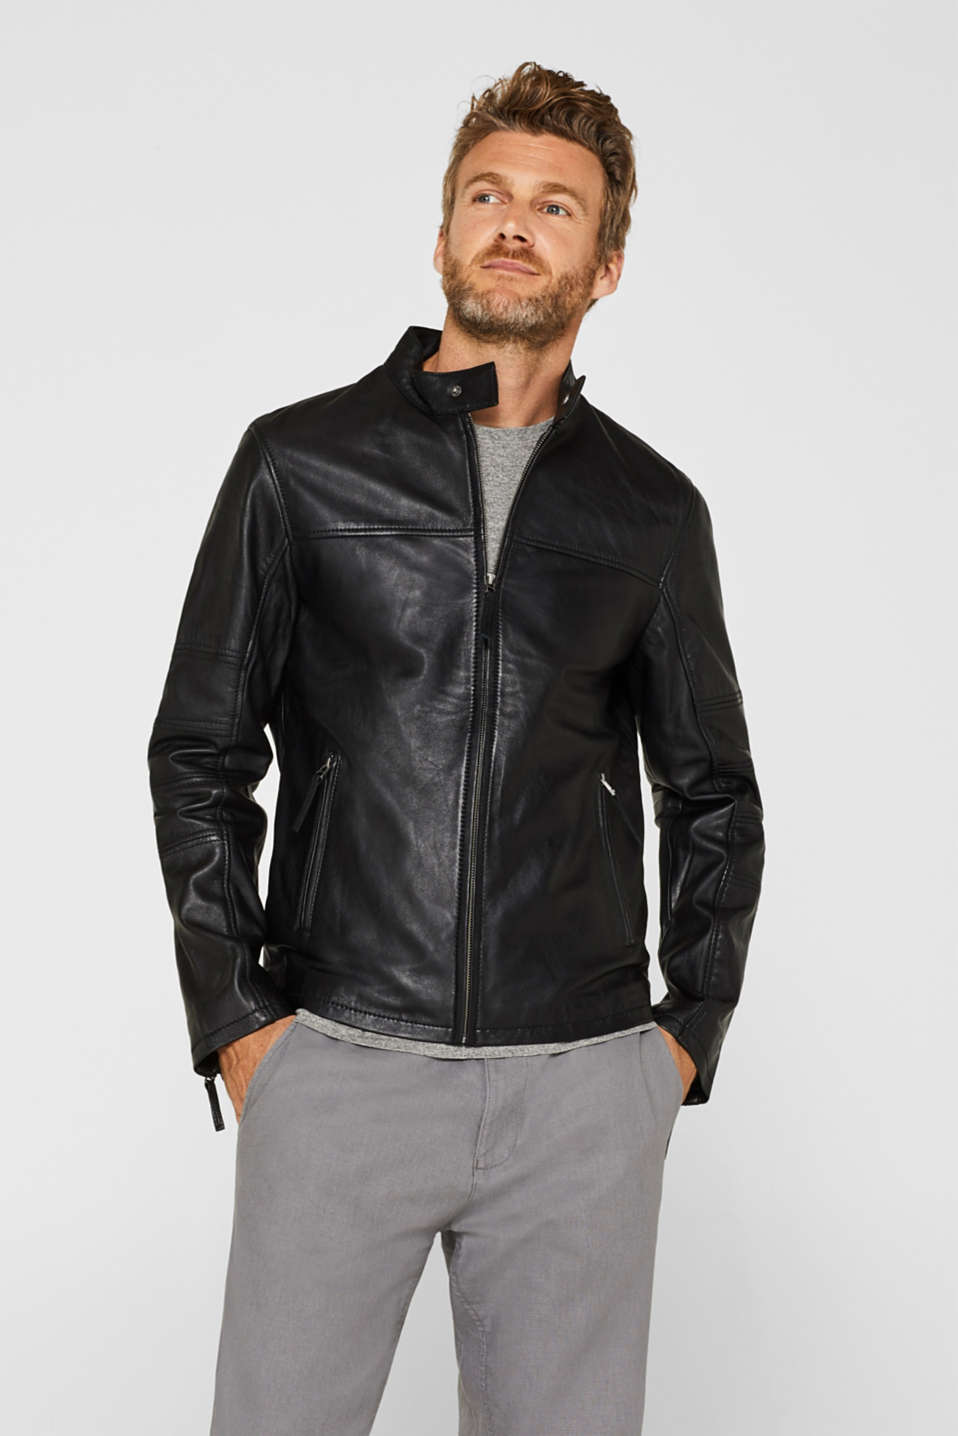 Esprit - Biker jacket made of nappa leather